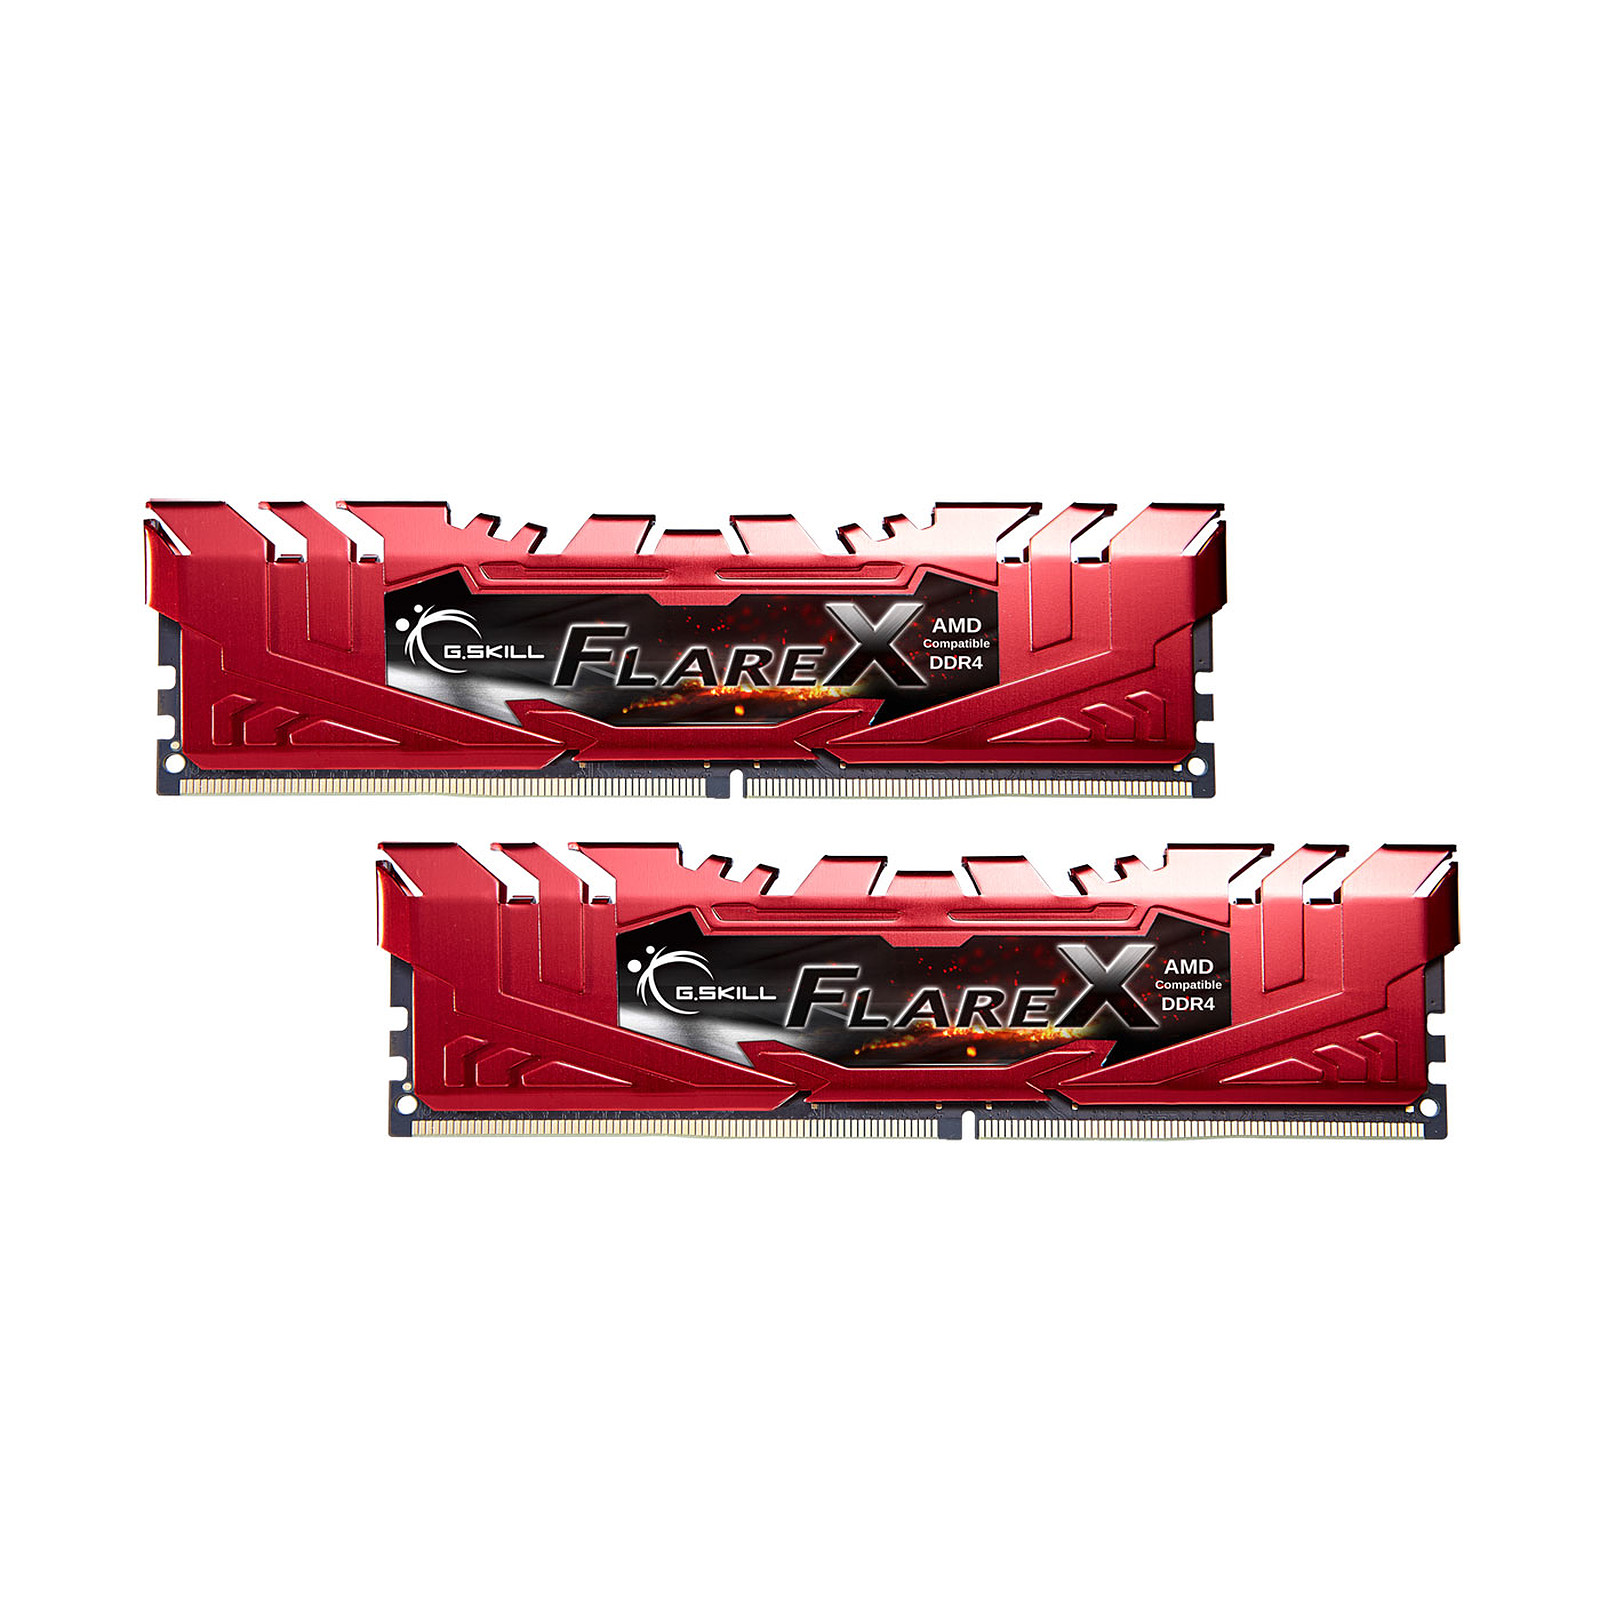 G.Skill Flare X Series Rouge 32 Go (2x 16 Go) DDR4 2400 MHz CL16